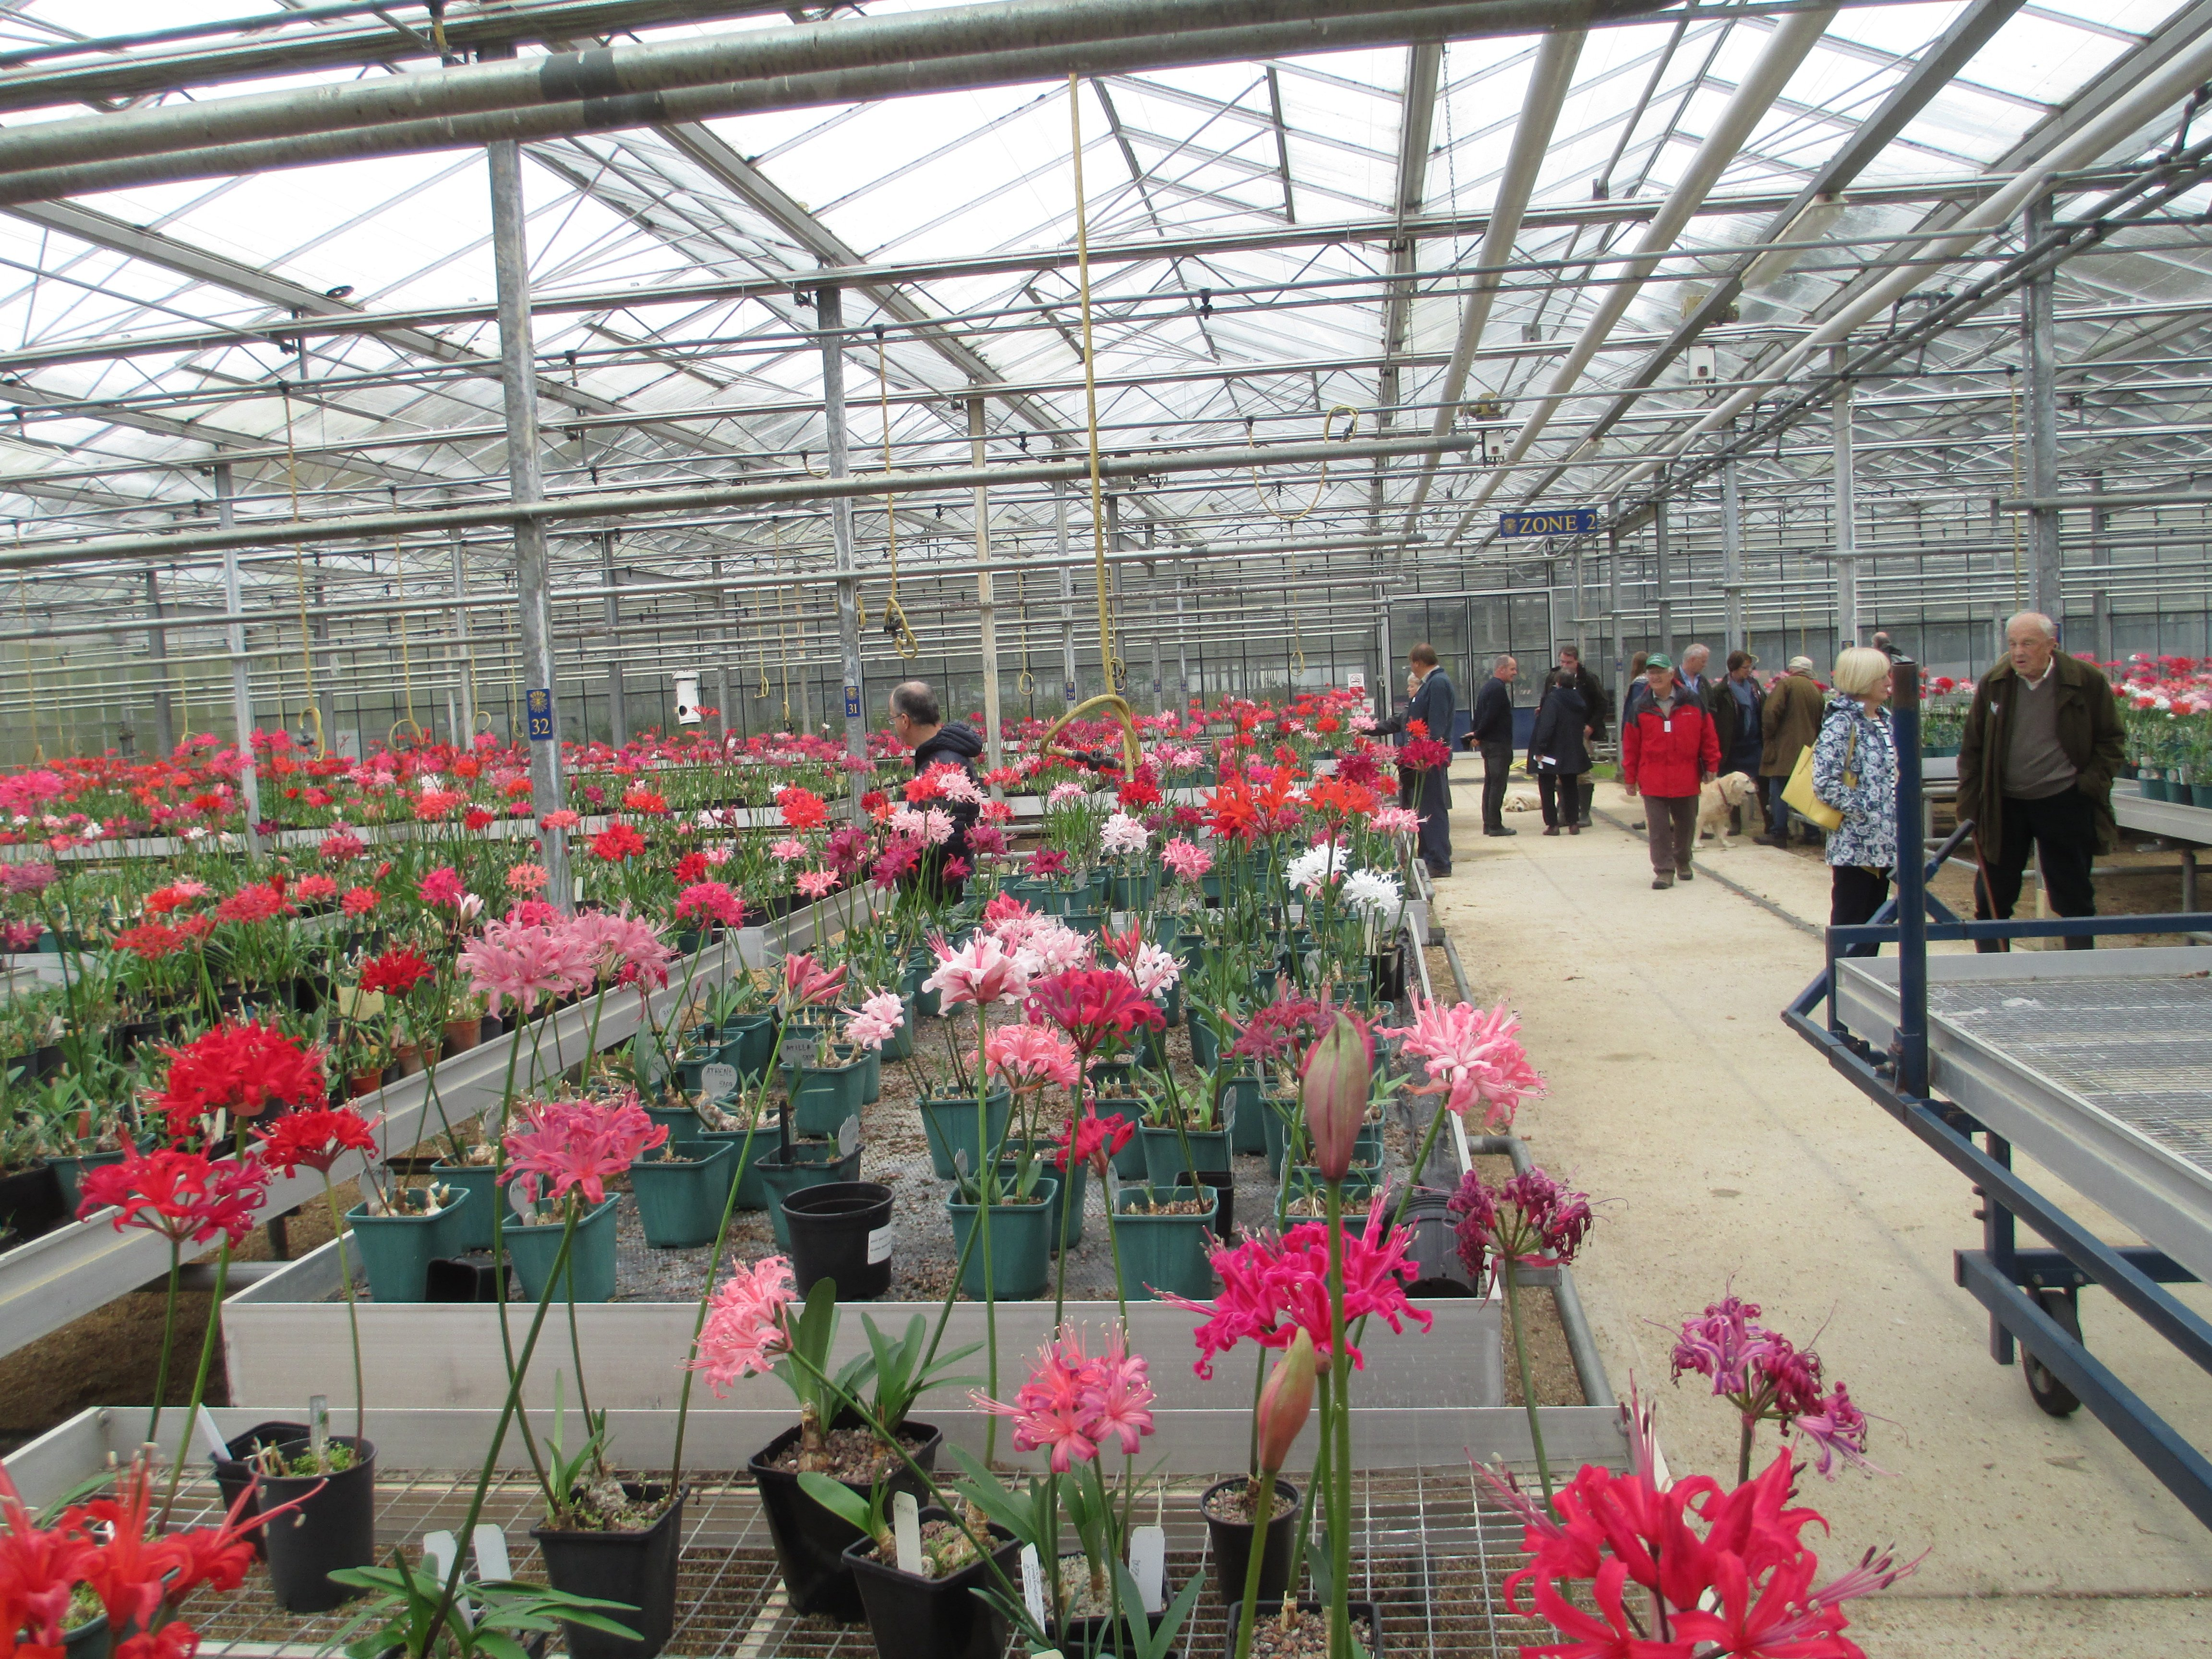 Members enjoying a visit to the glasshouse to view blooms of new varieties being developed, as well as old favourites.